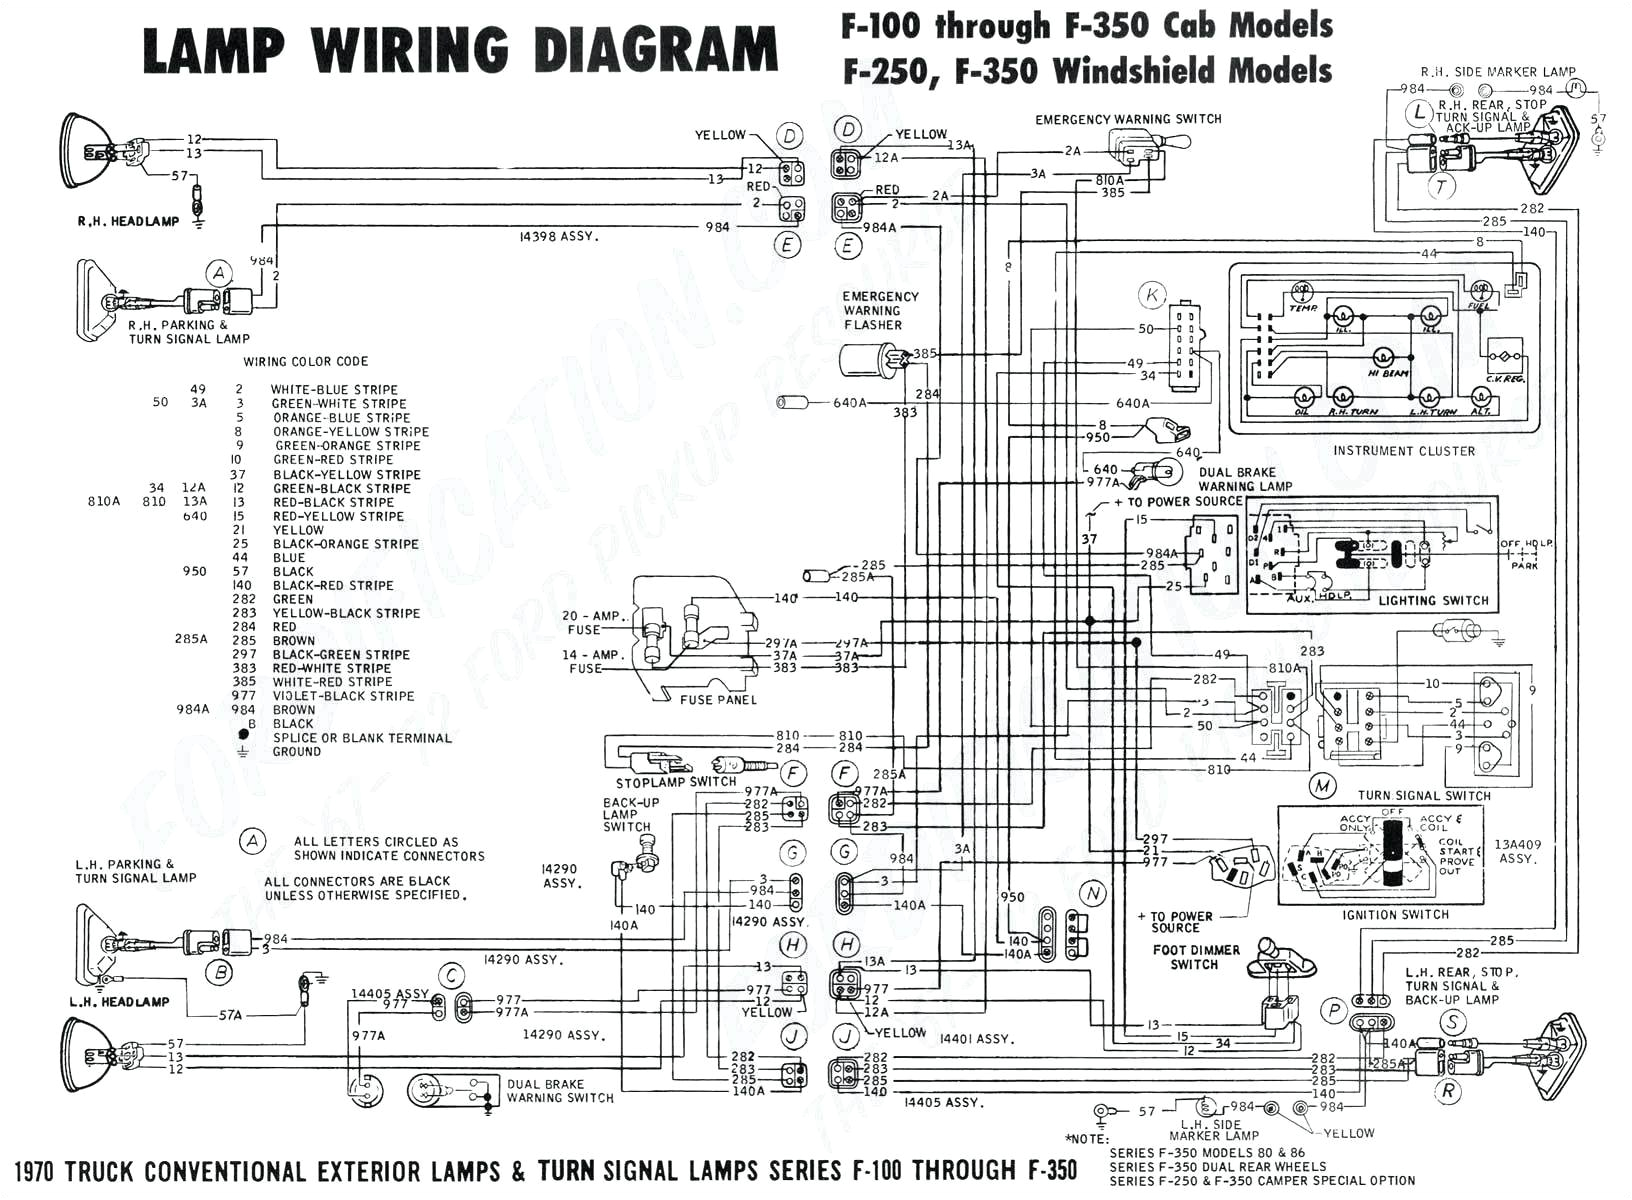 start stop switch wiring diagram free picture 5 9l wiring diagram free picture schematic wiring diagramslazer 5 wiring diagram wiring diagram centre 5